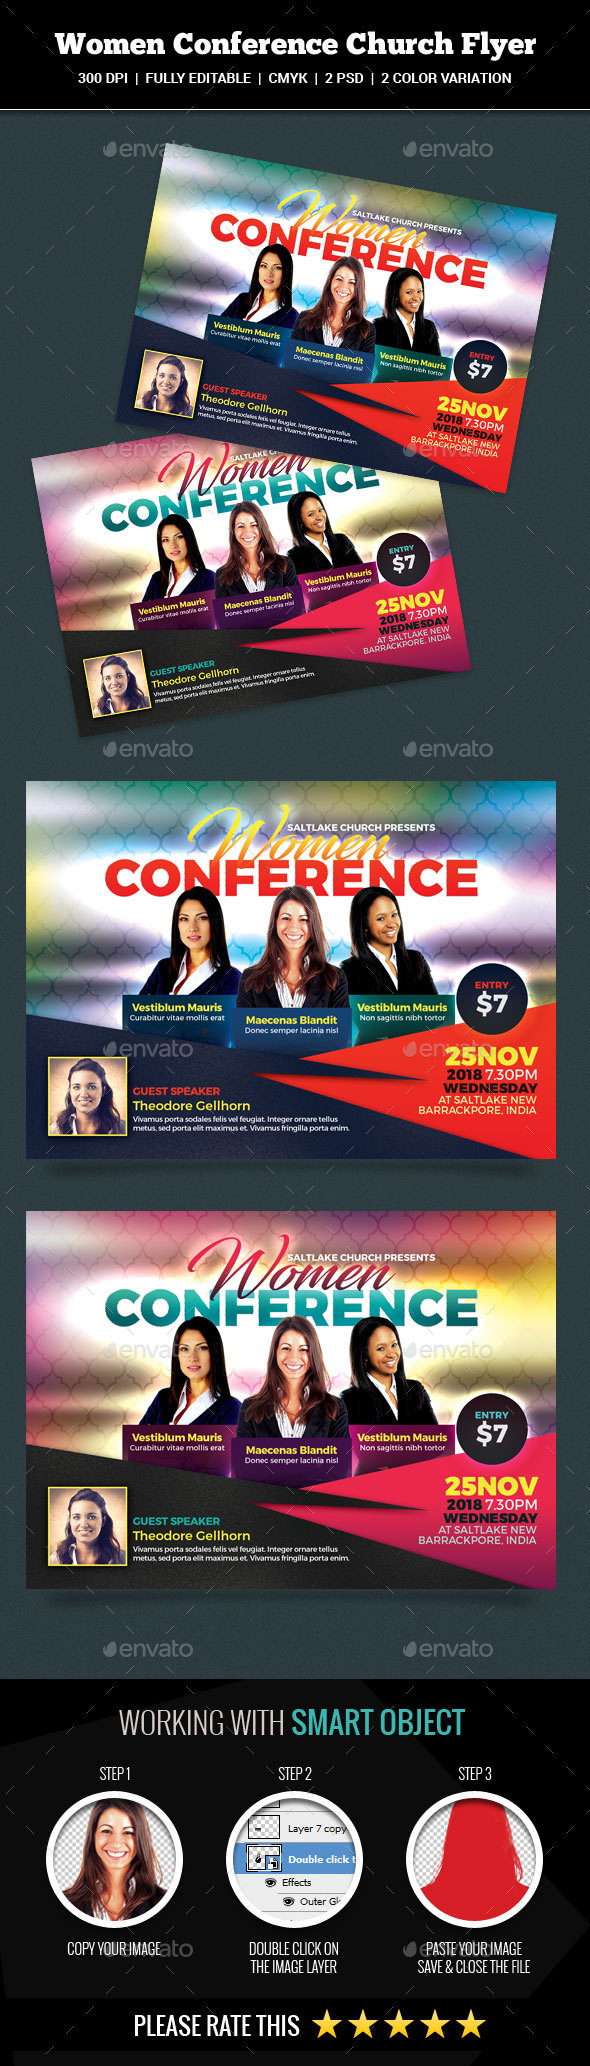 Women Conference Church Flyer - Church Flyers